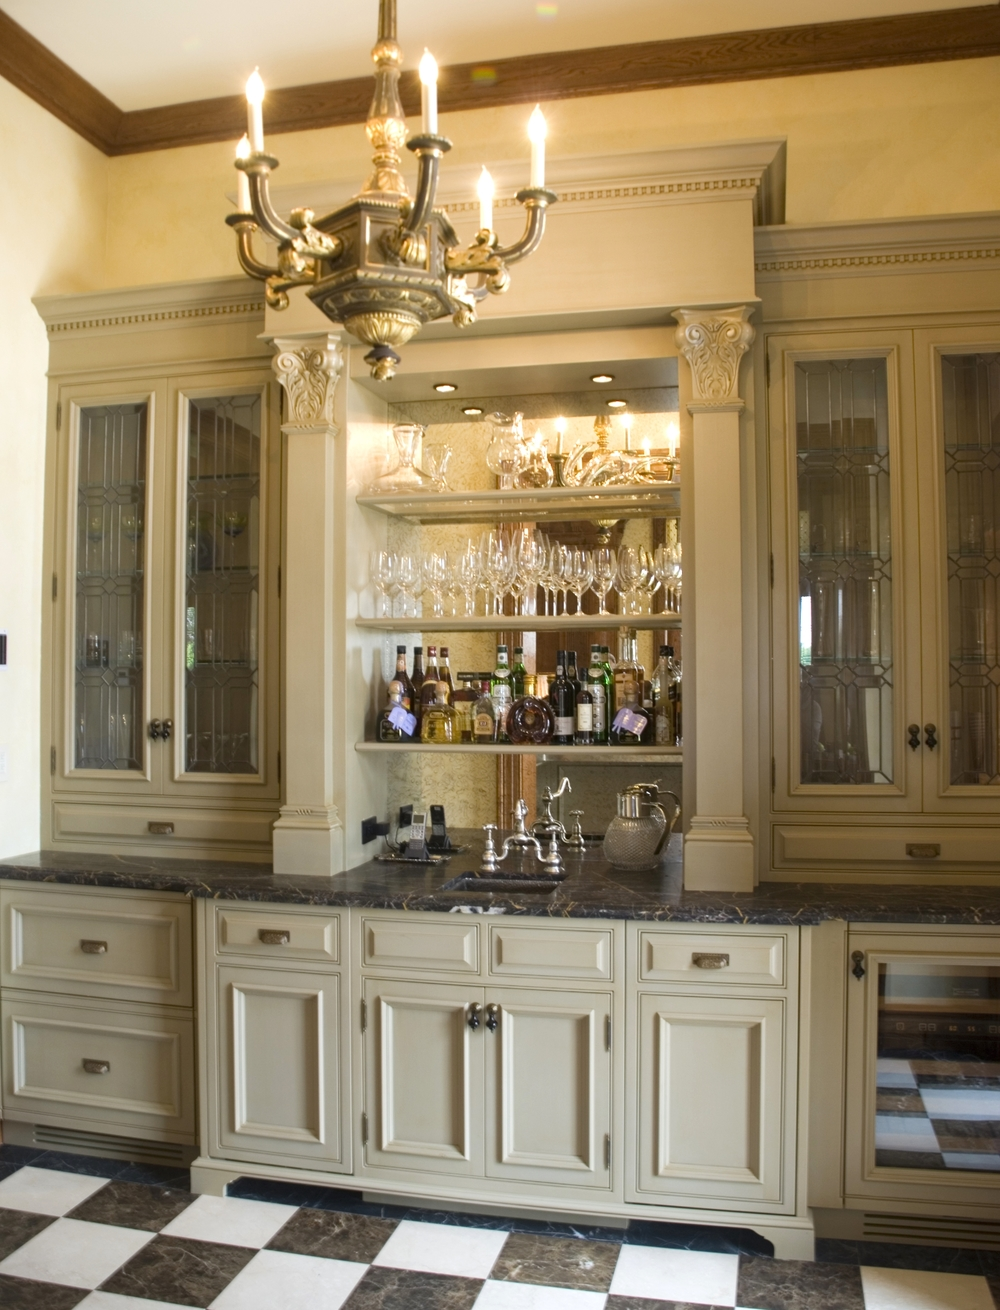 Living_Room_Bar2.jpg